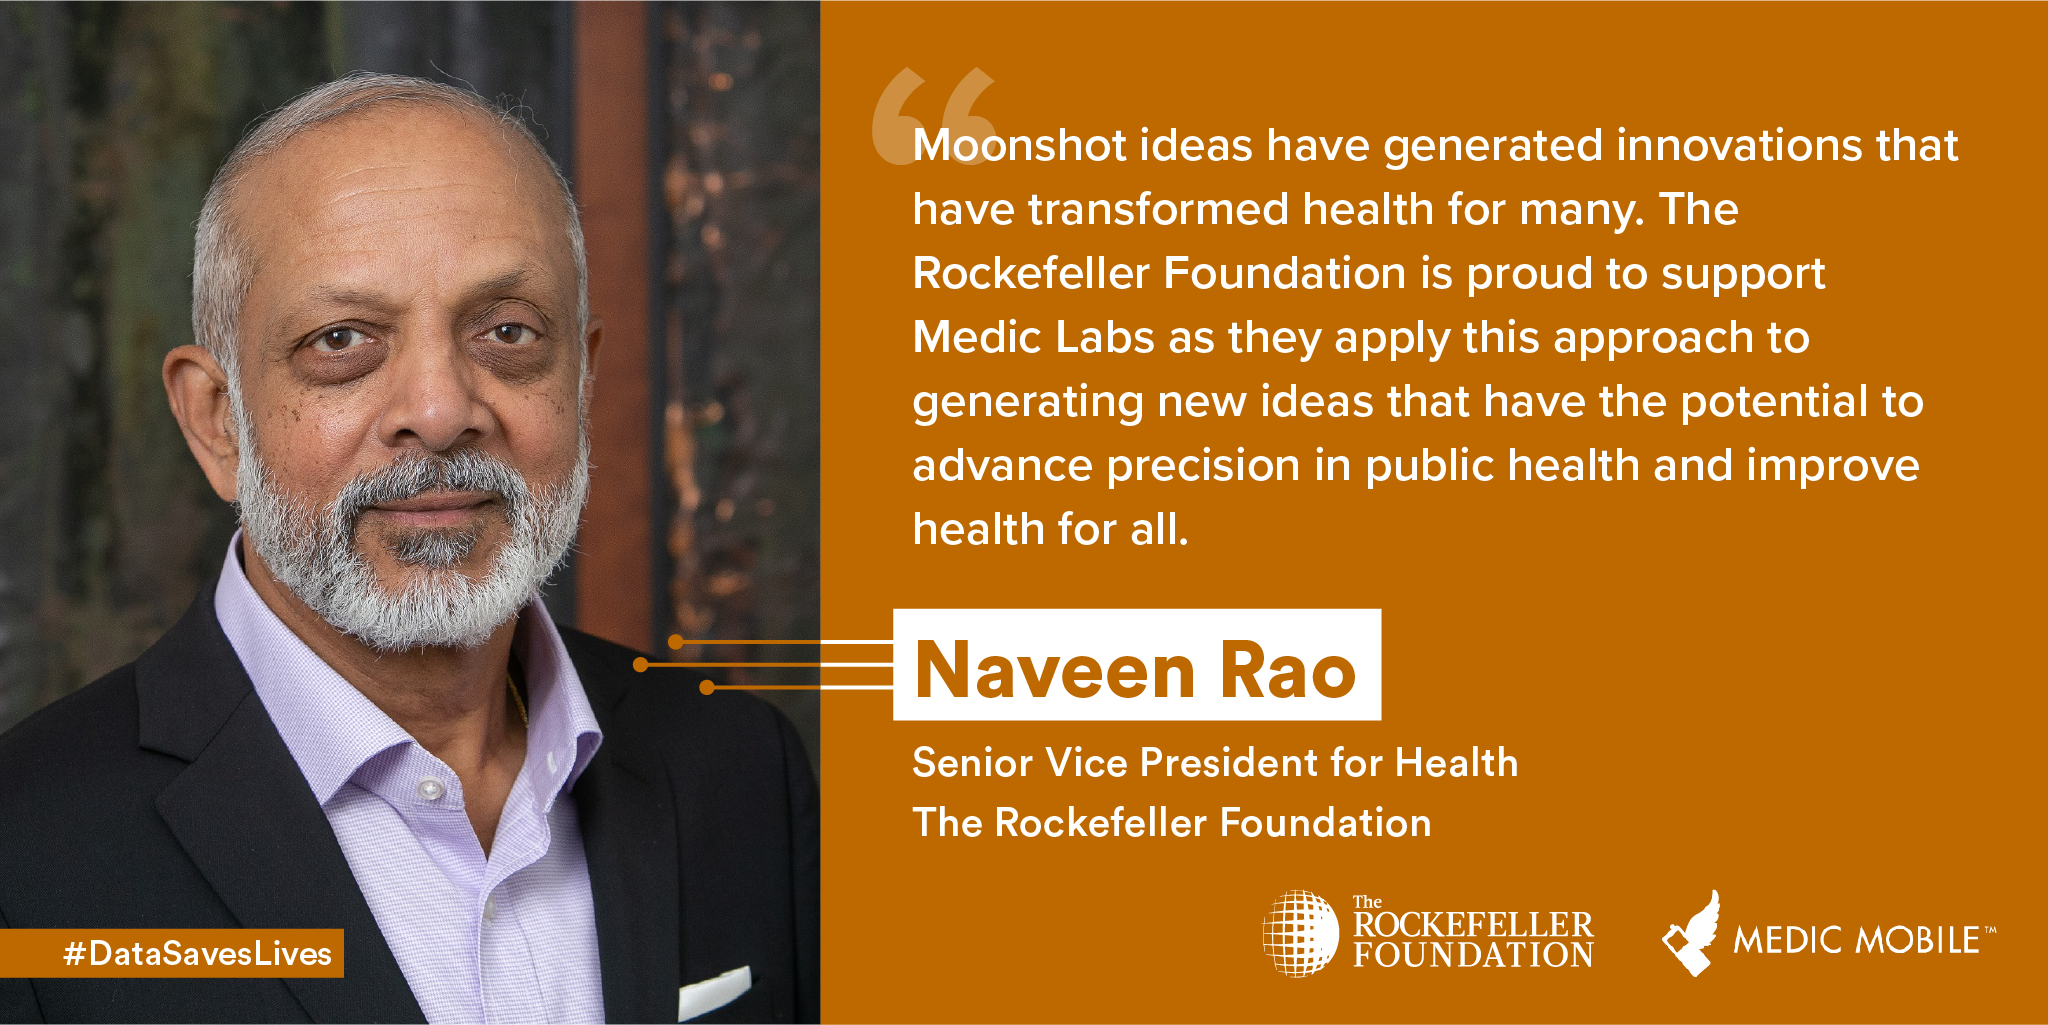 Medic Mobile Launches Medic Labs: A New Tech Accelerator for Global Health with an Initial $3 Million Investment from The Rockefeller Foundation - The Rockefeller Foundation